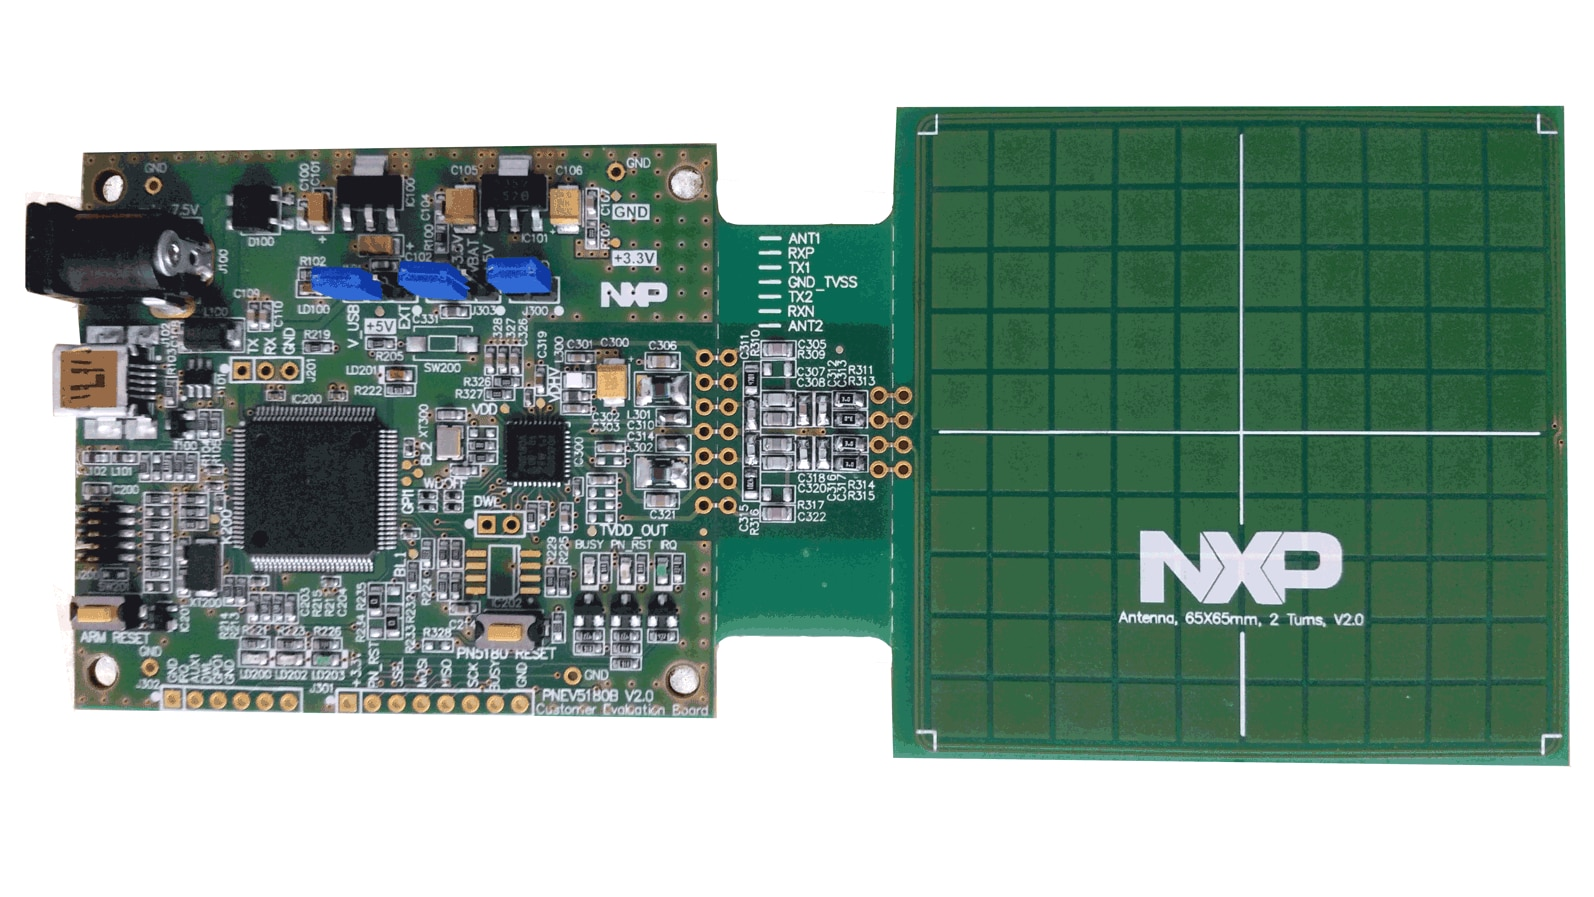 OM25180FDK : PN5180 NFC Frontend Development Kit for POS Terminal Applications  thumbnail